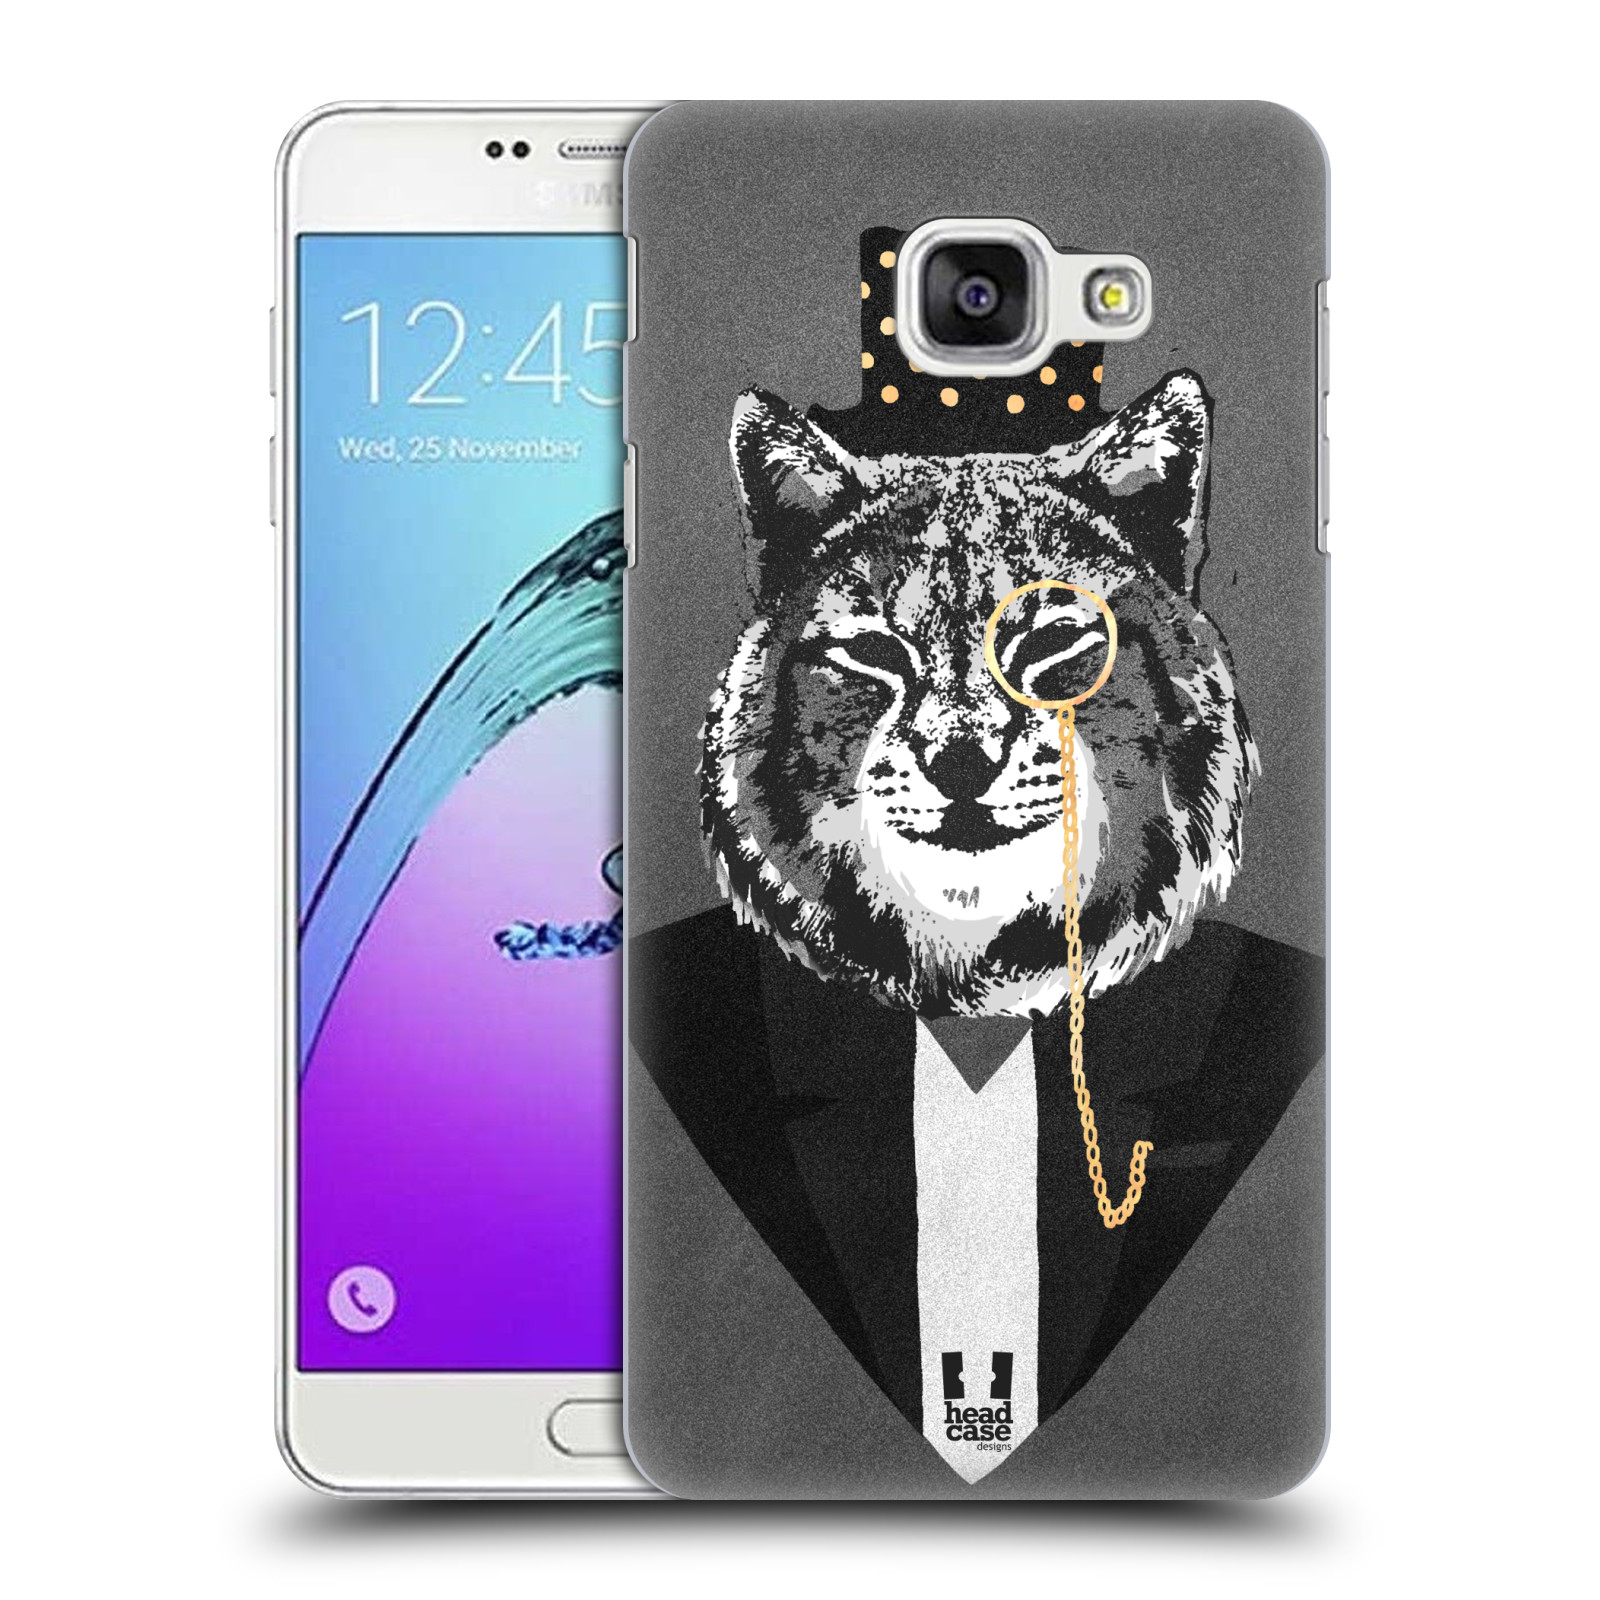 HEAD-CASE-DESIGNS-SUPER-CHIC-ETUI-COQUE-D-039-ARRIERE-POUR-SAMSUNG-GALAXY-A7-2017